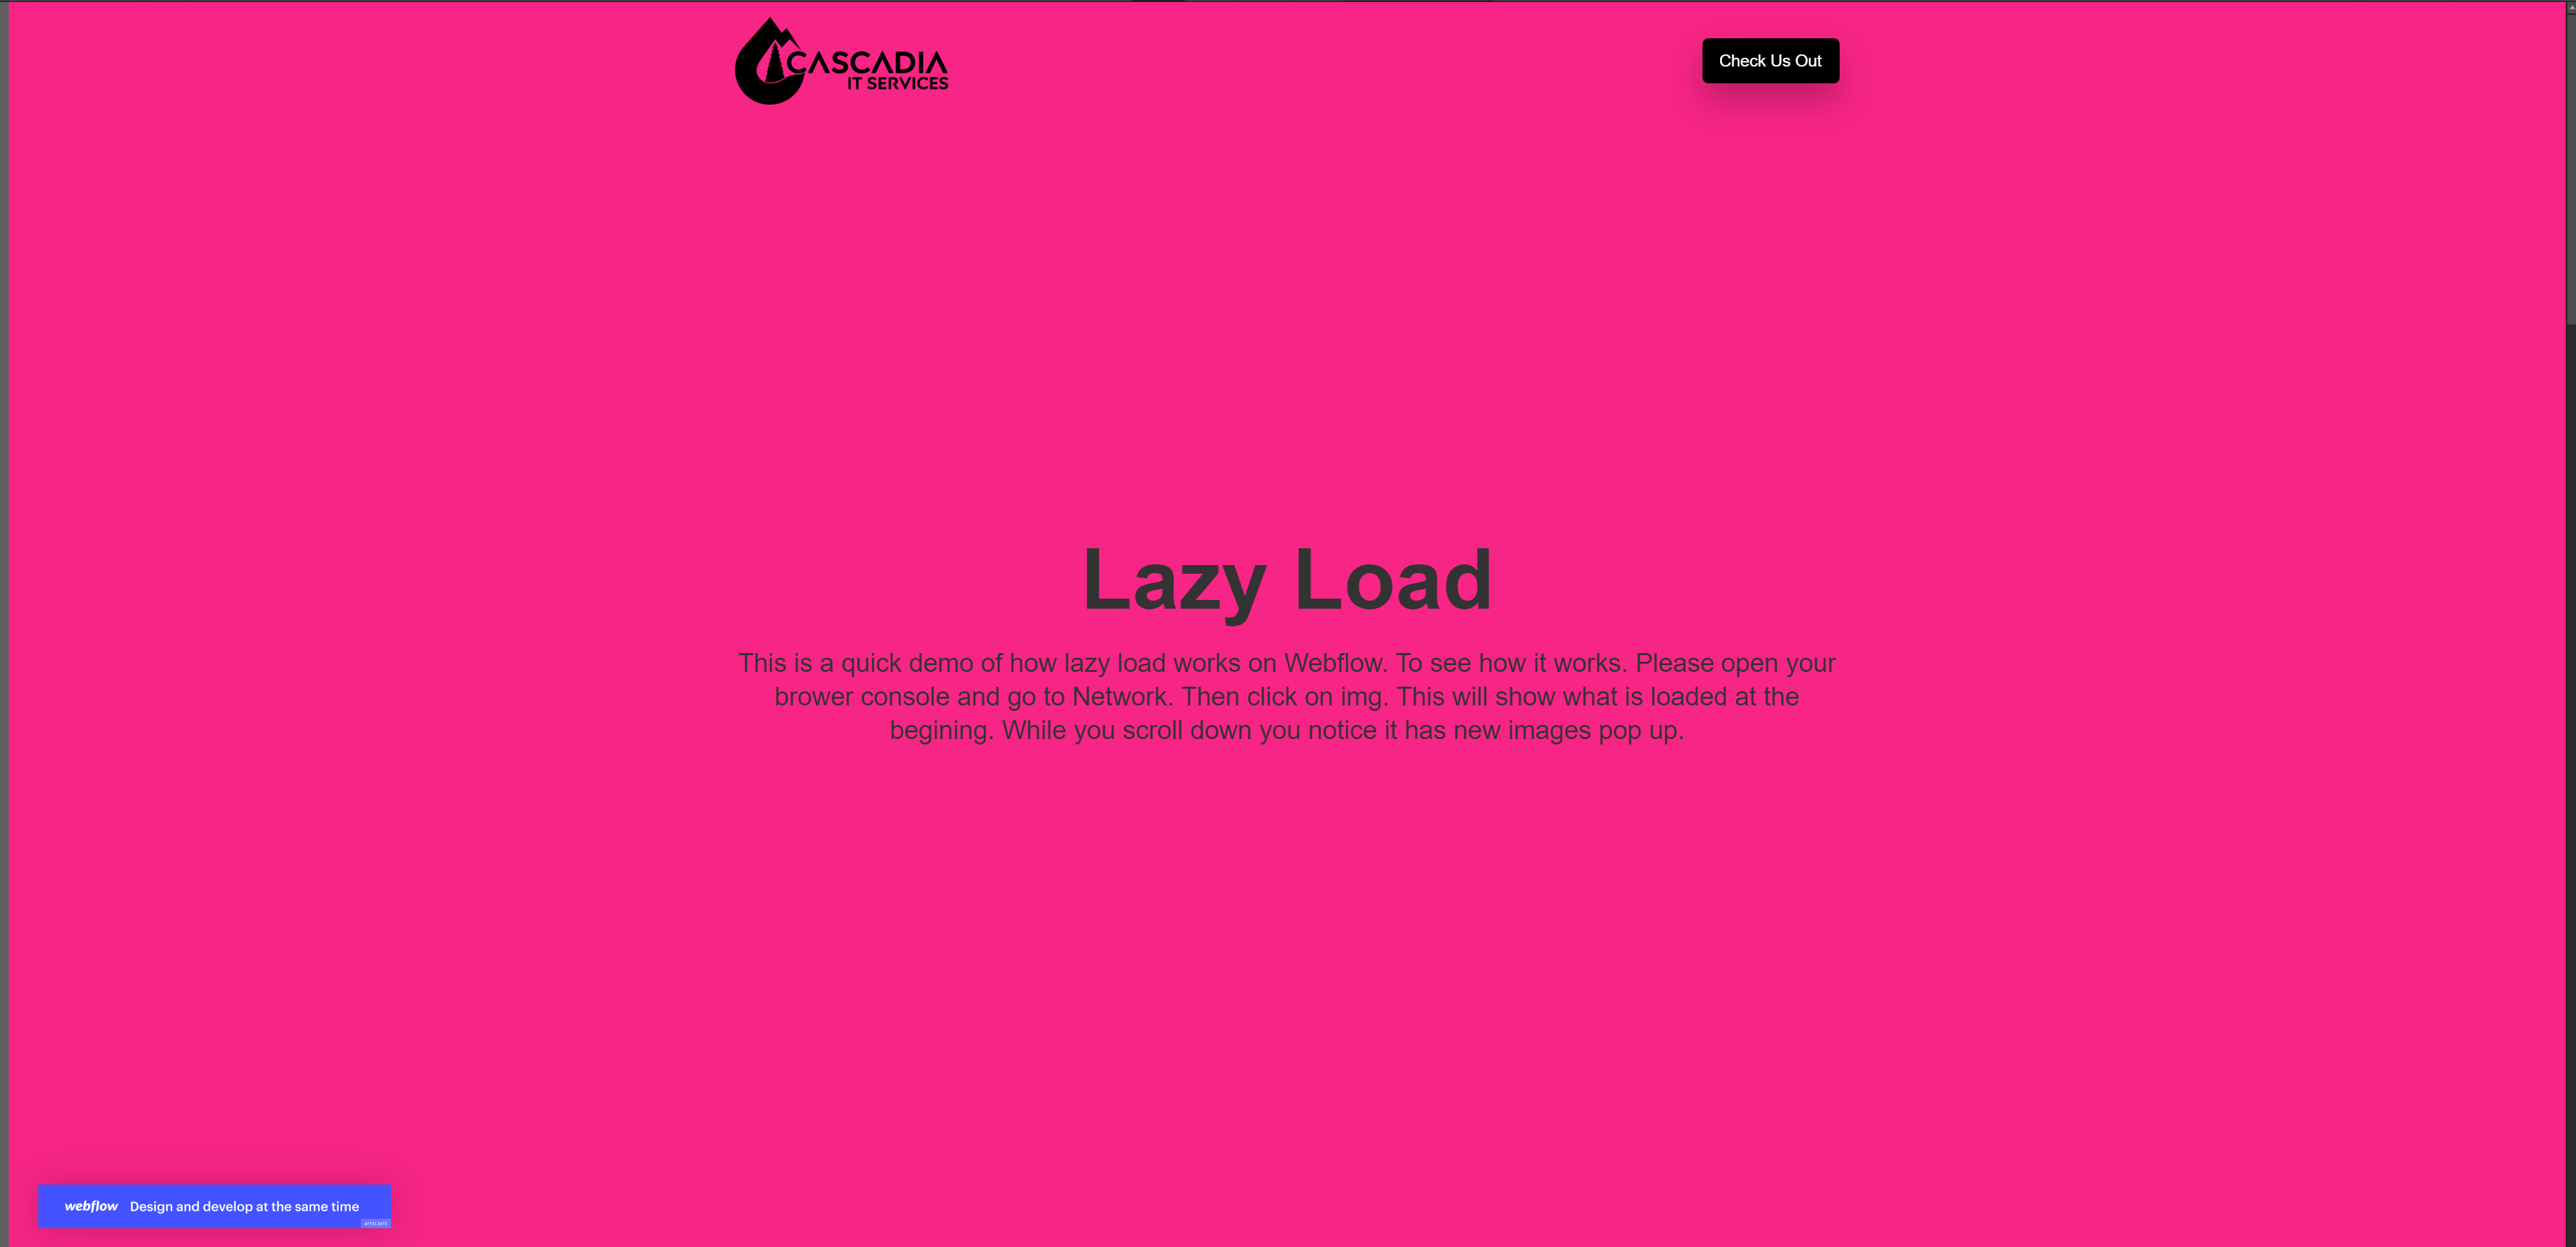 How to add Lazy Load on Webflow